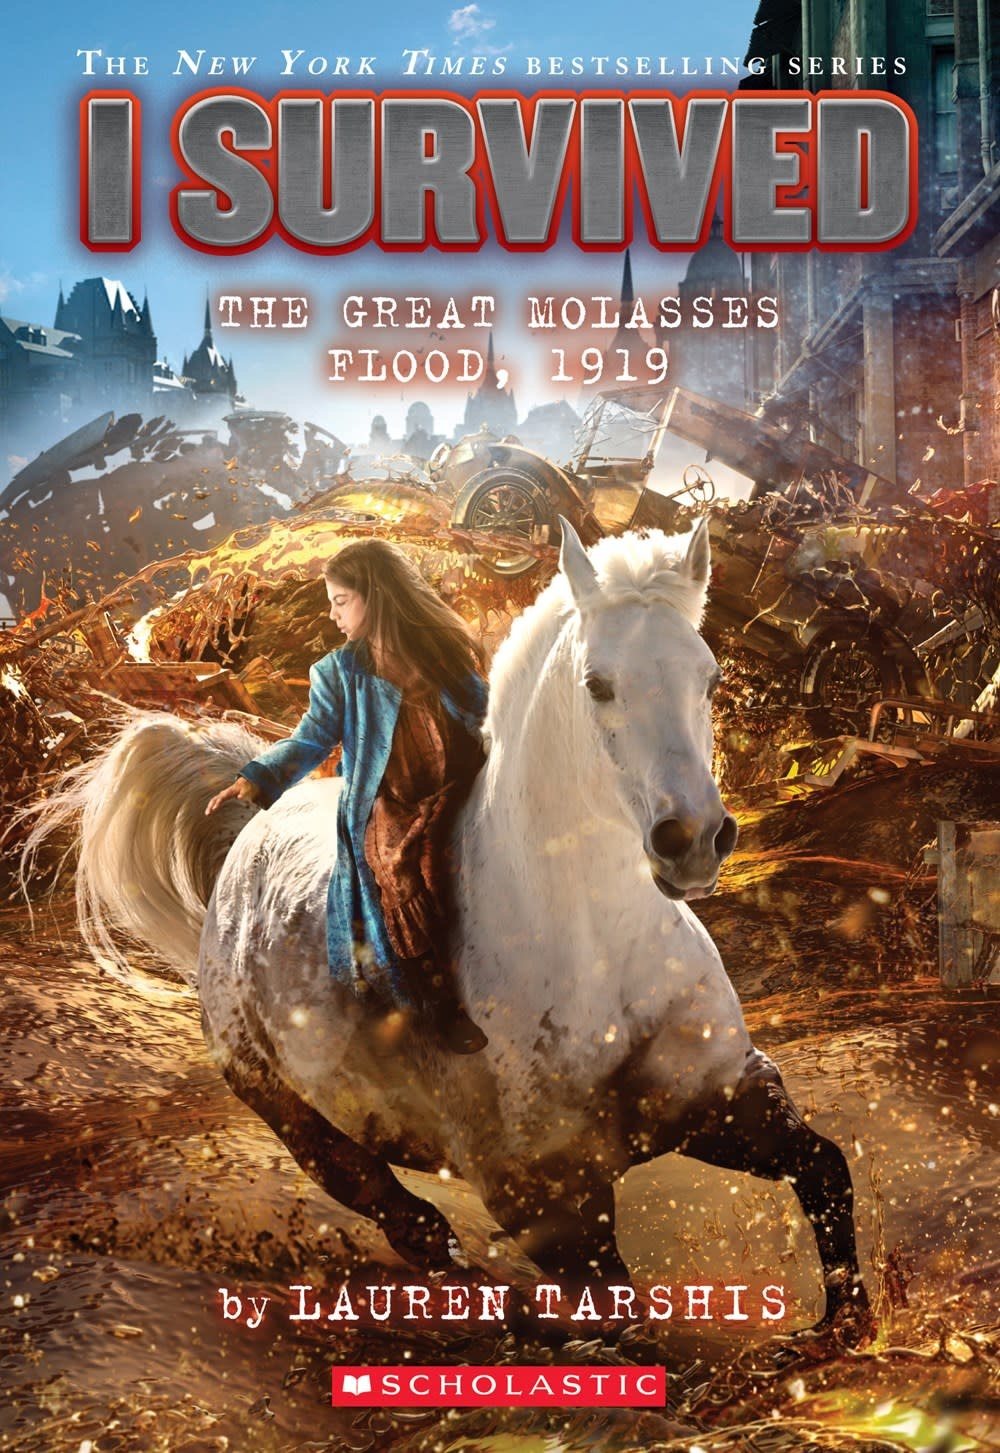 Scholastic Paperbacks I Survived: The Great Molasses Flood, 1919